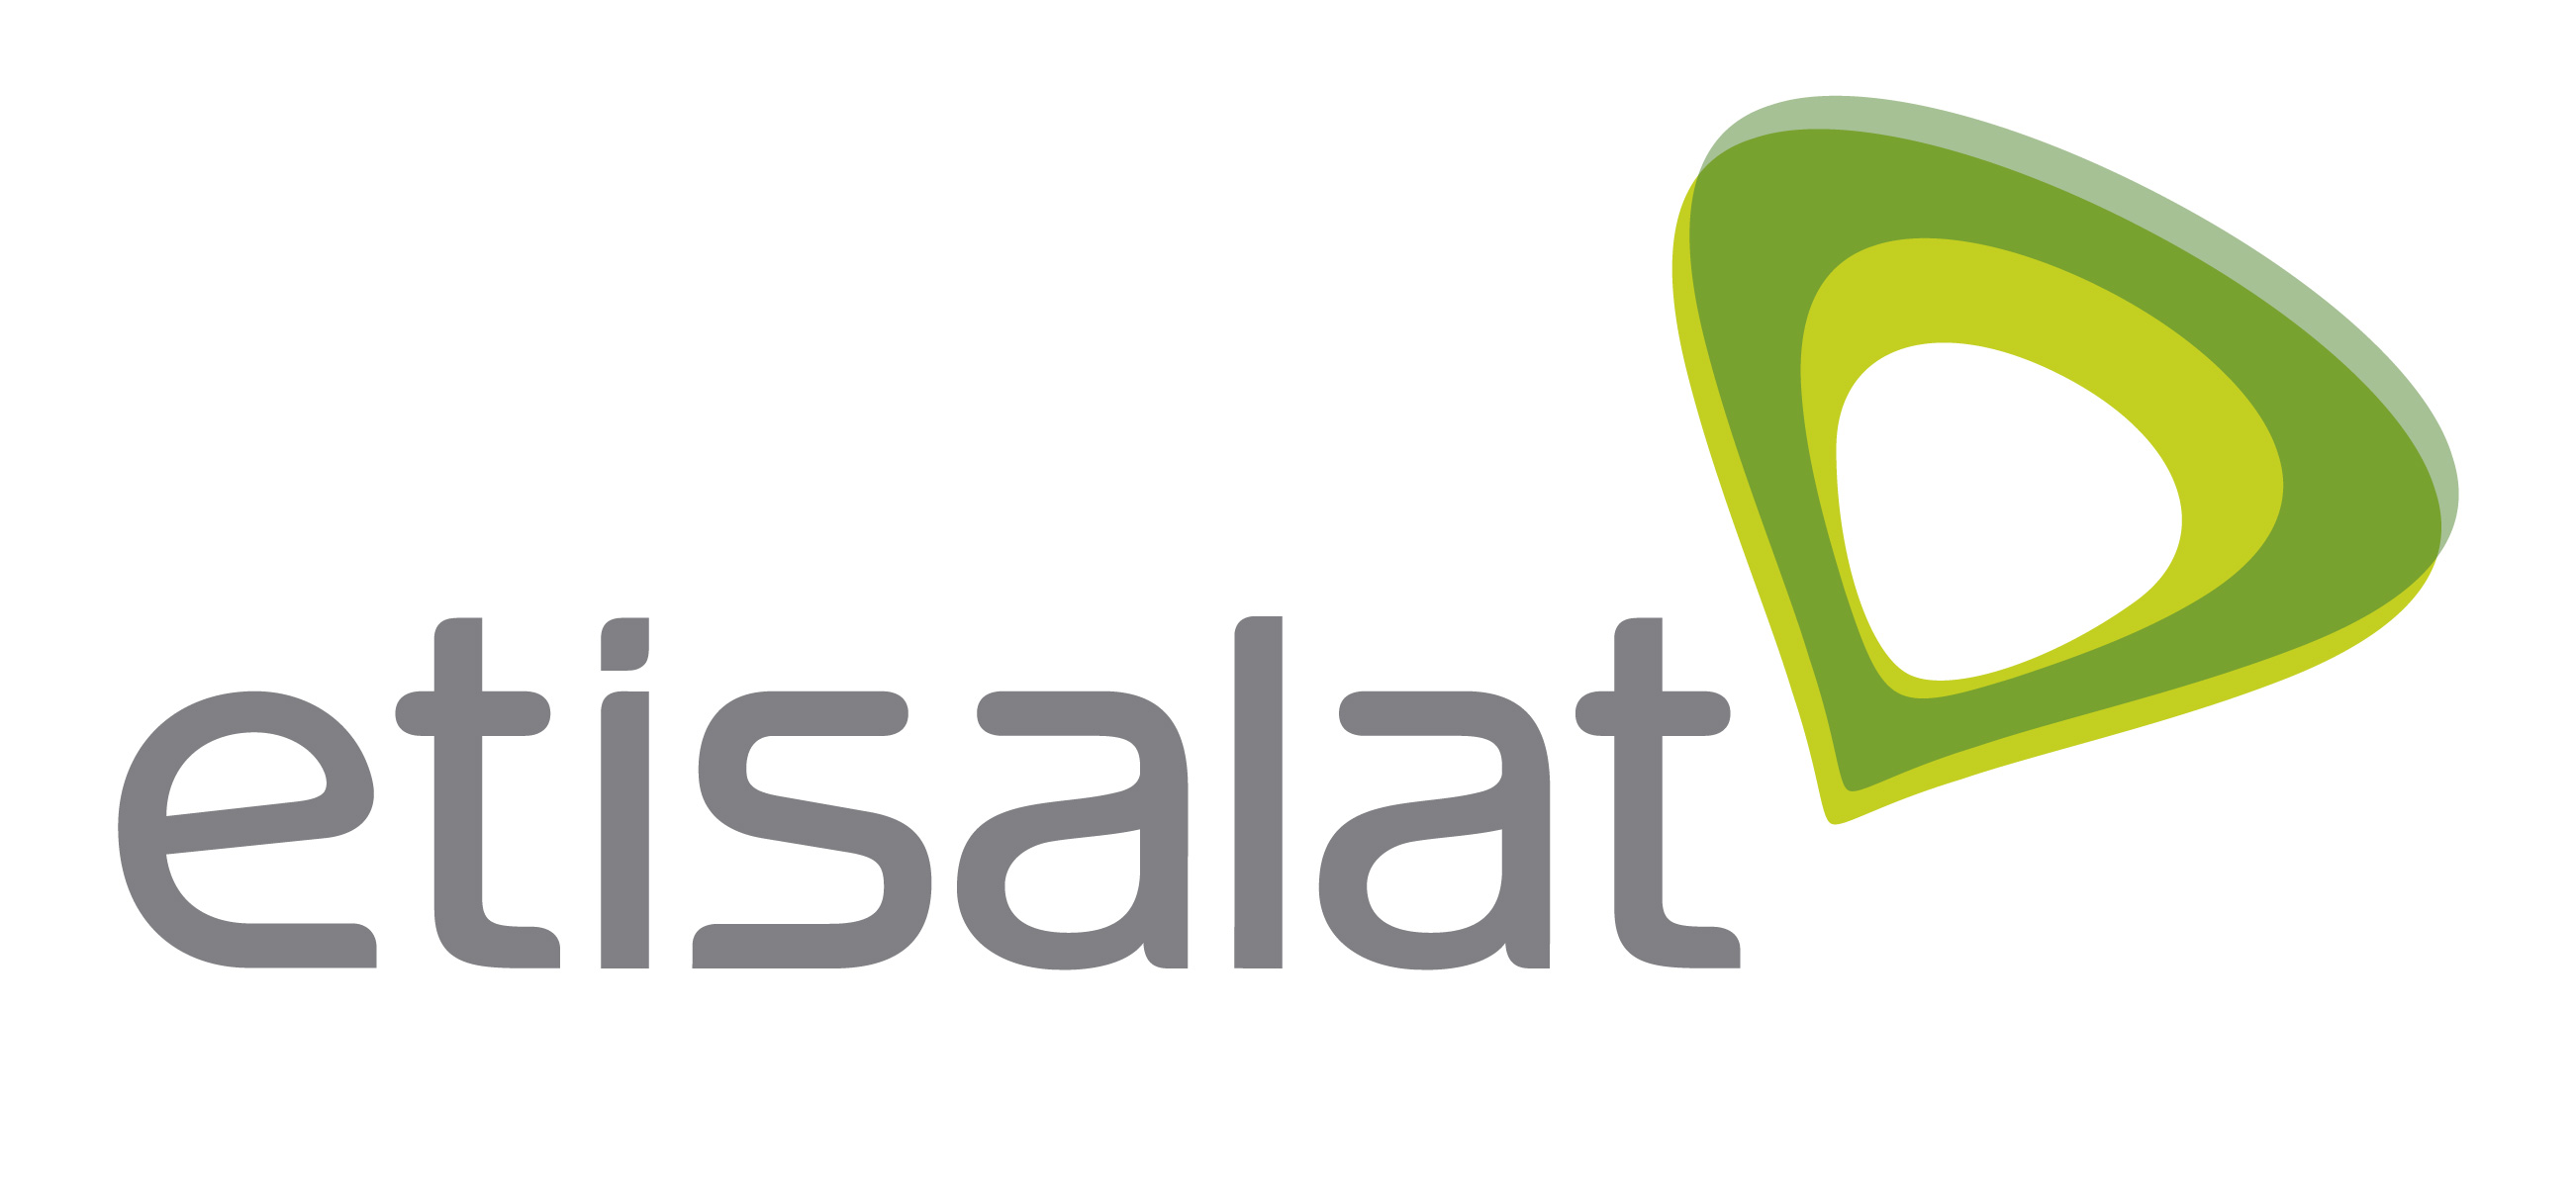 How to share or transfer data on Etisalat sim cards.